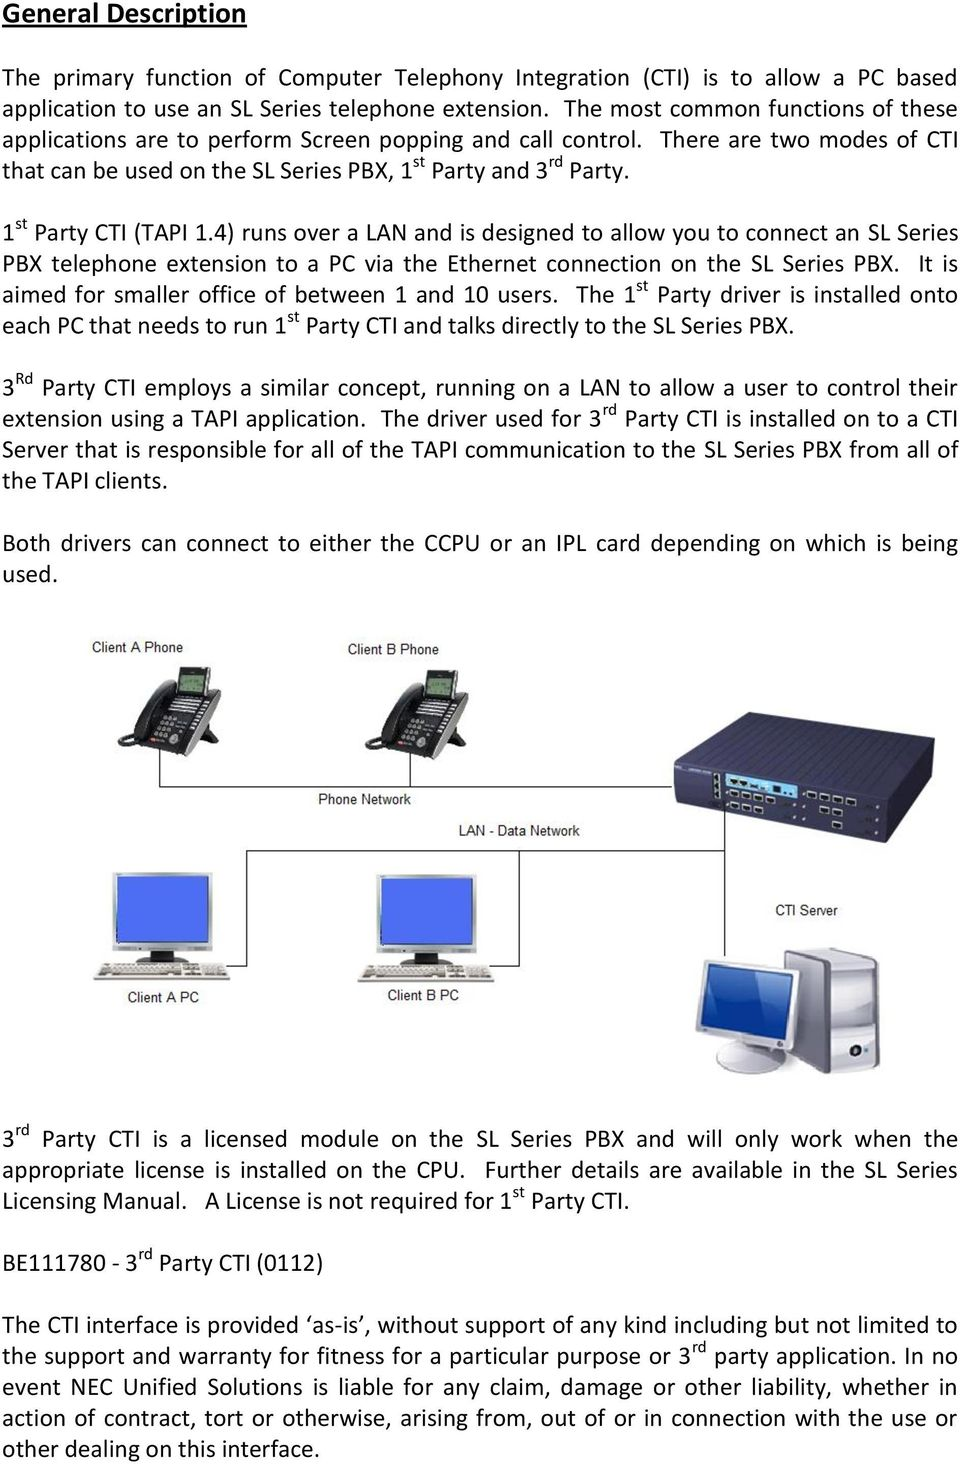 1 st Party CTI (TAPI 1.4) runs over a LAN and is designed to allow you to connect an SL Series PBX telephone extension to a PC via the Ethernet connection on the SL Series PBX.